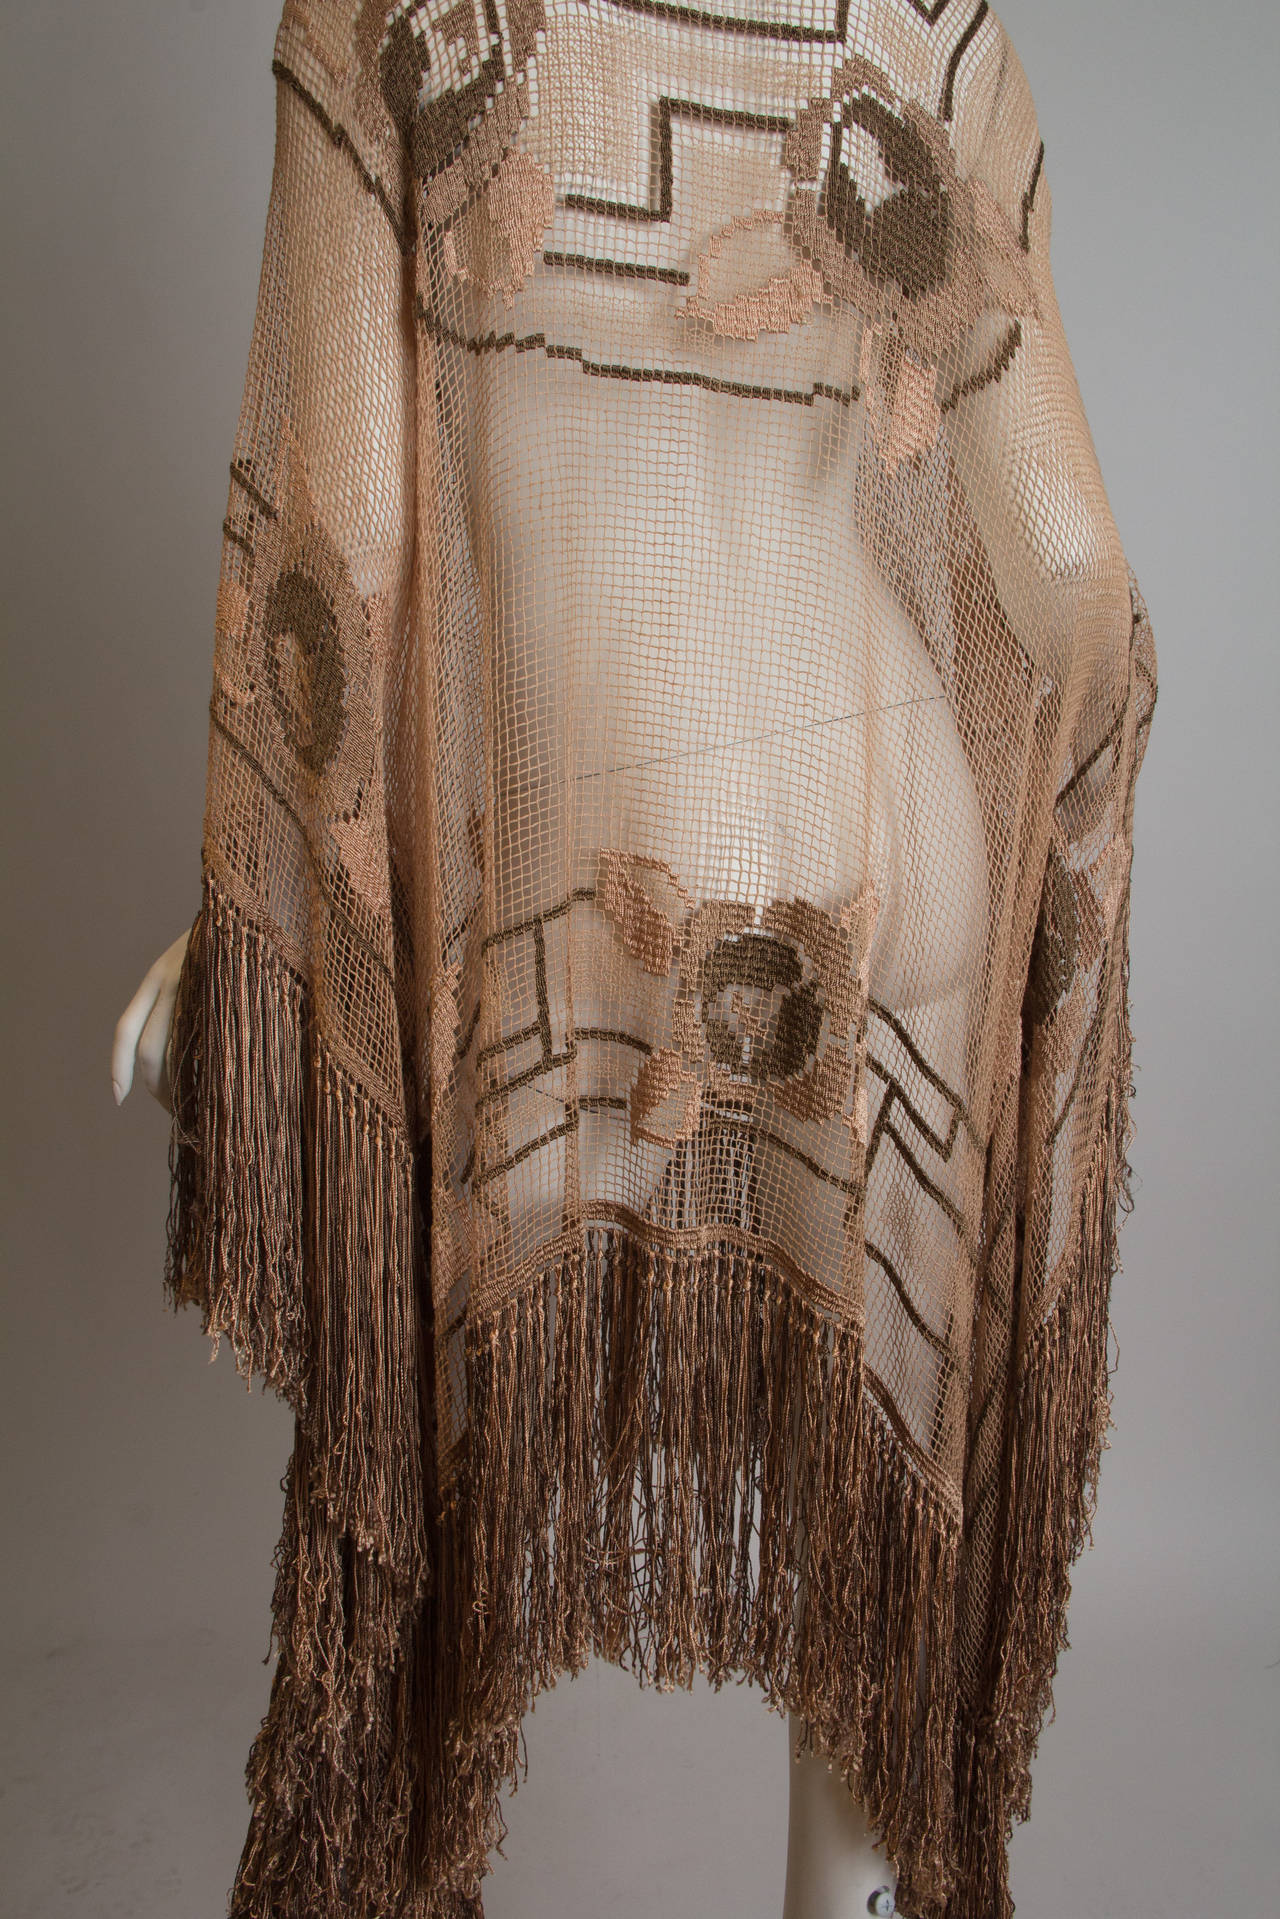 Women's 1920s Handmade Filet Lace Boho Fringed Tunic For Sale